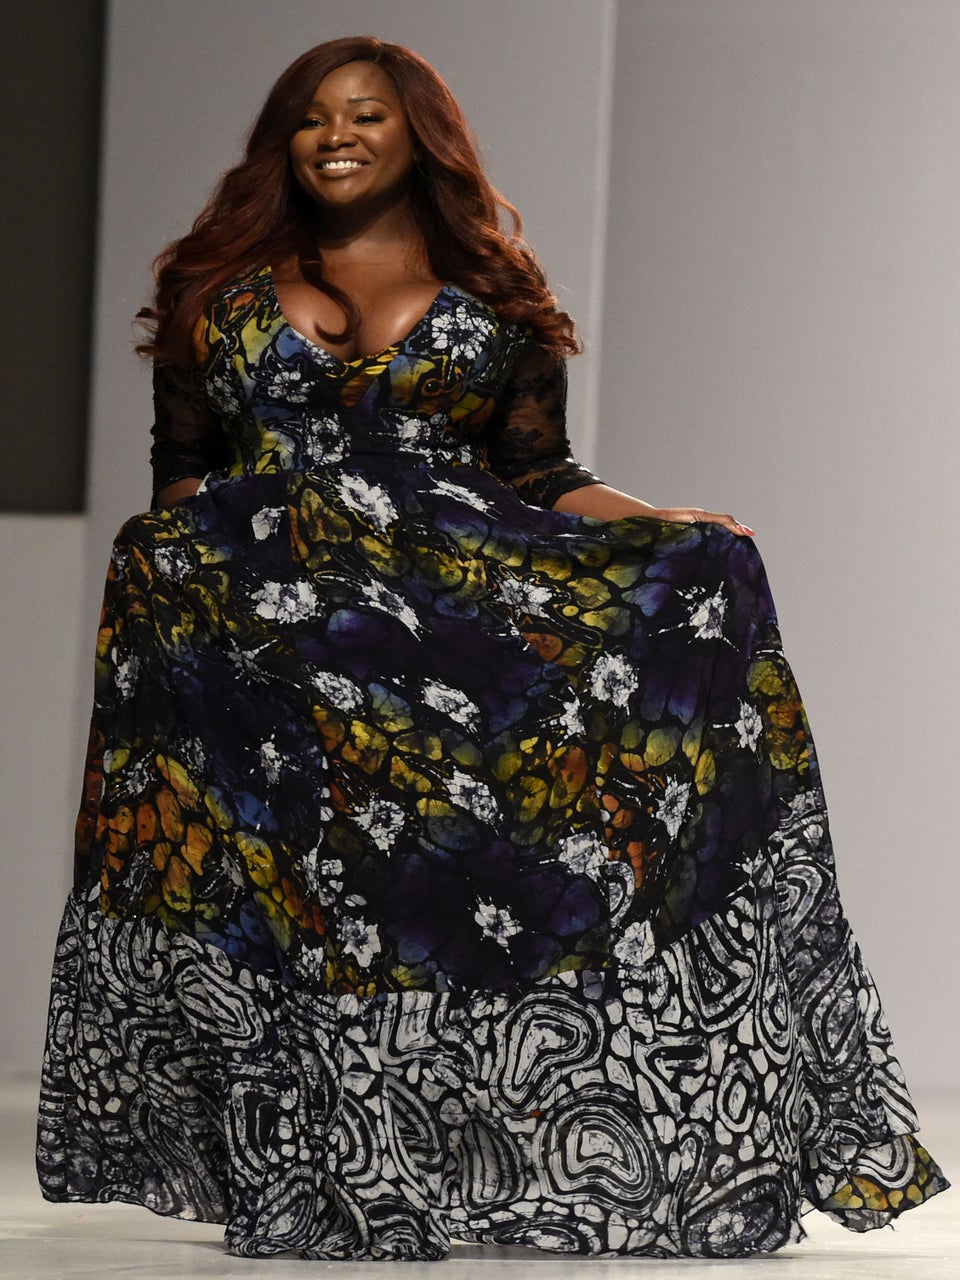 Curvy Beauties Light Up TheRunway On Day 2 Of Lagos Fashion Week In Nigeria